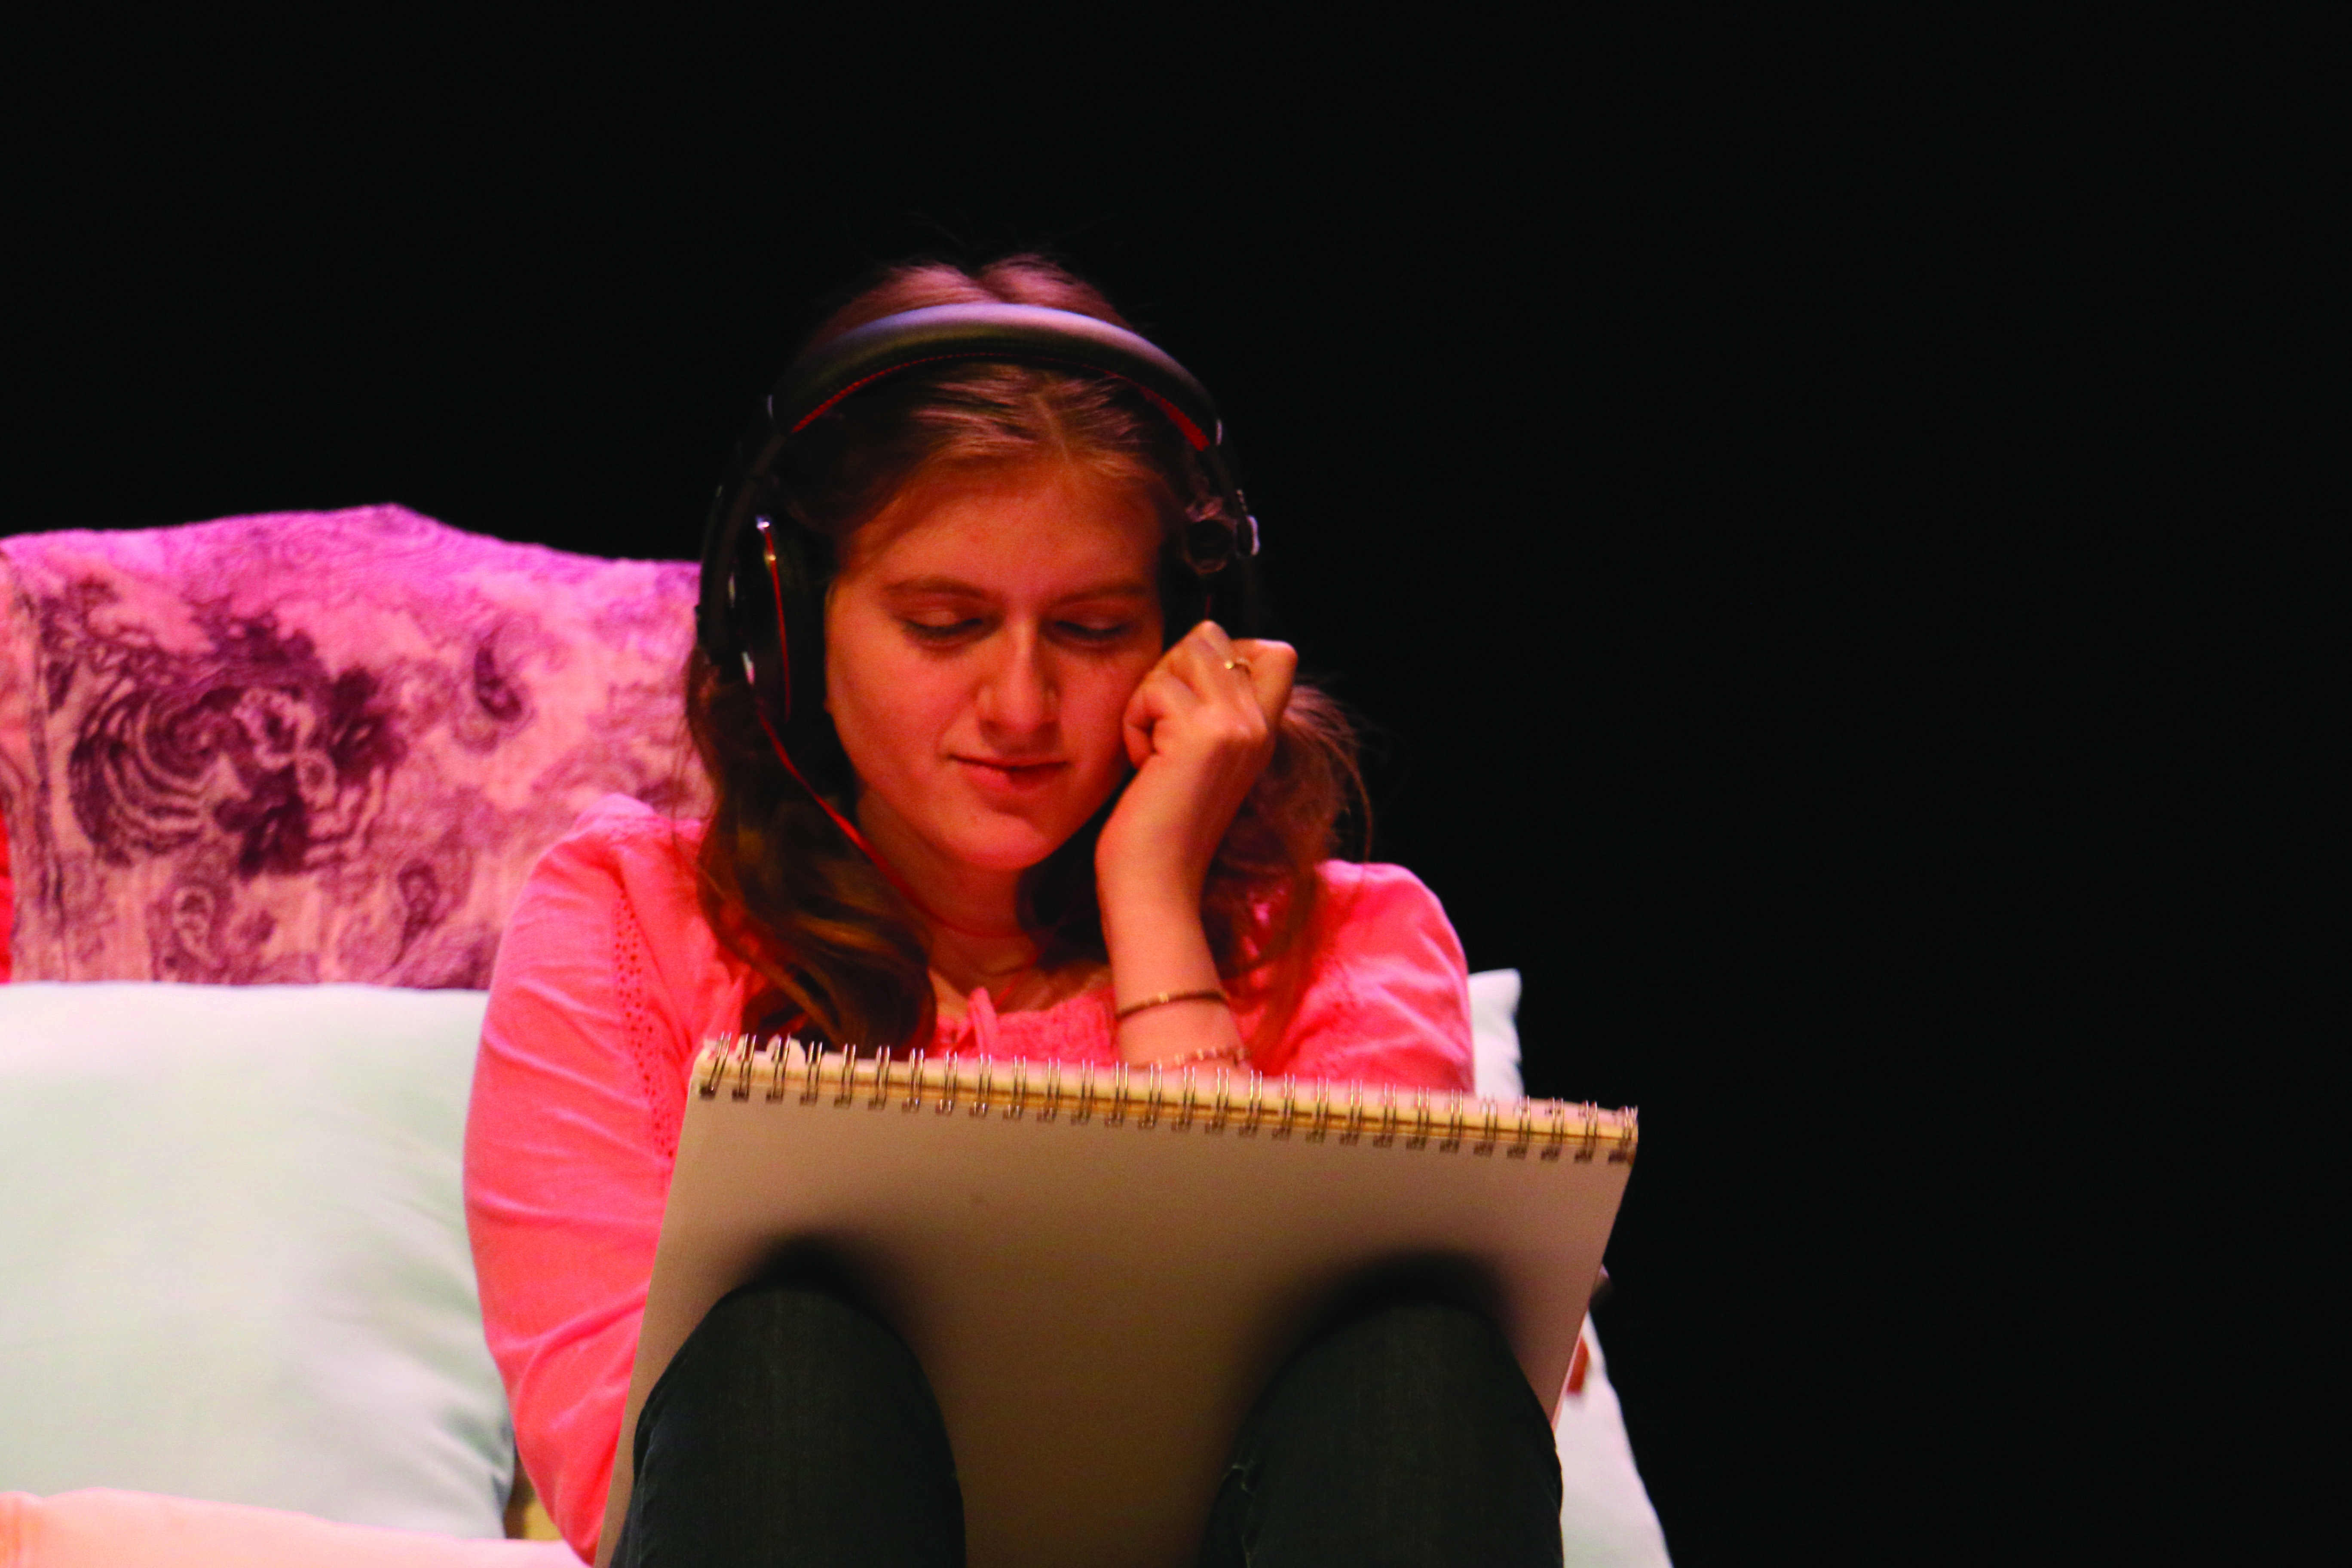 """ISOLATED: Cate Wolfen '17 sits on her bed listening to music during Sabrina de Brito's '17 play, """"The Hidden Empire."""" Credit: Pavan Tauh/Chronicle"""